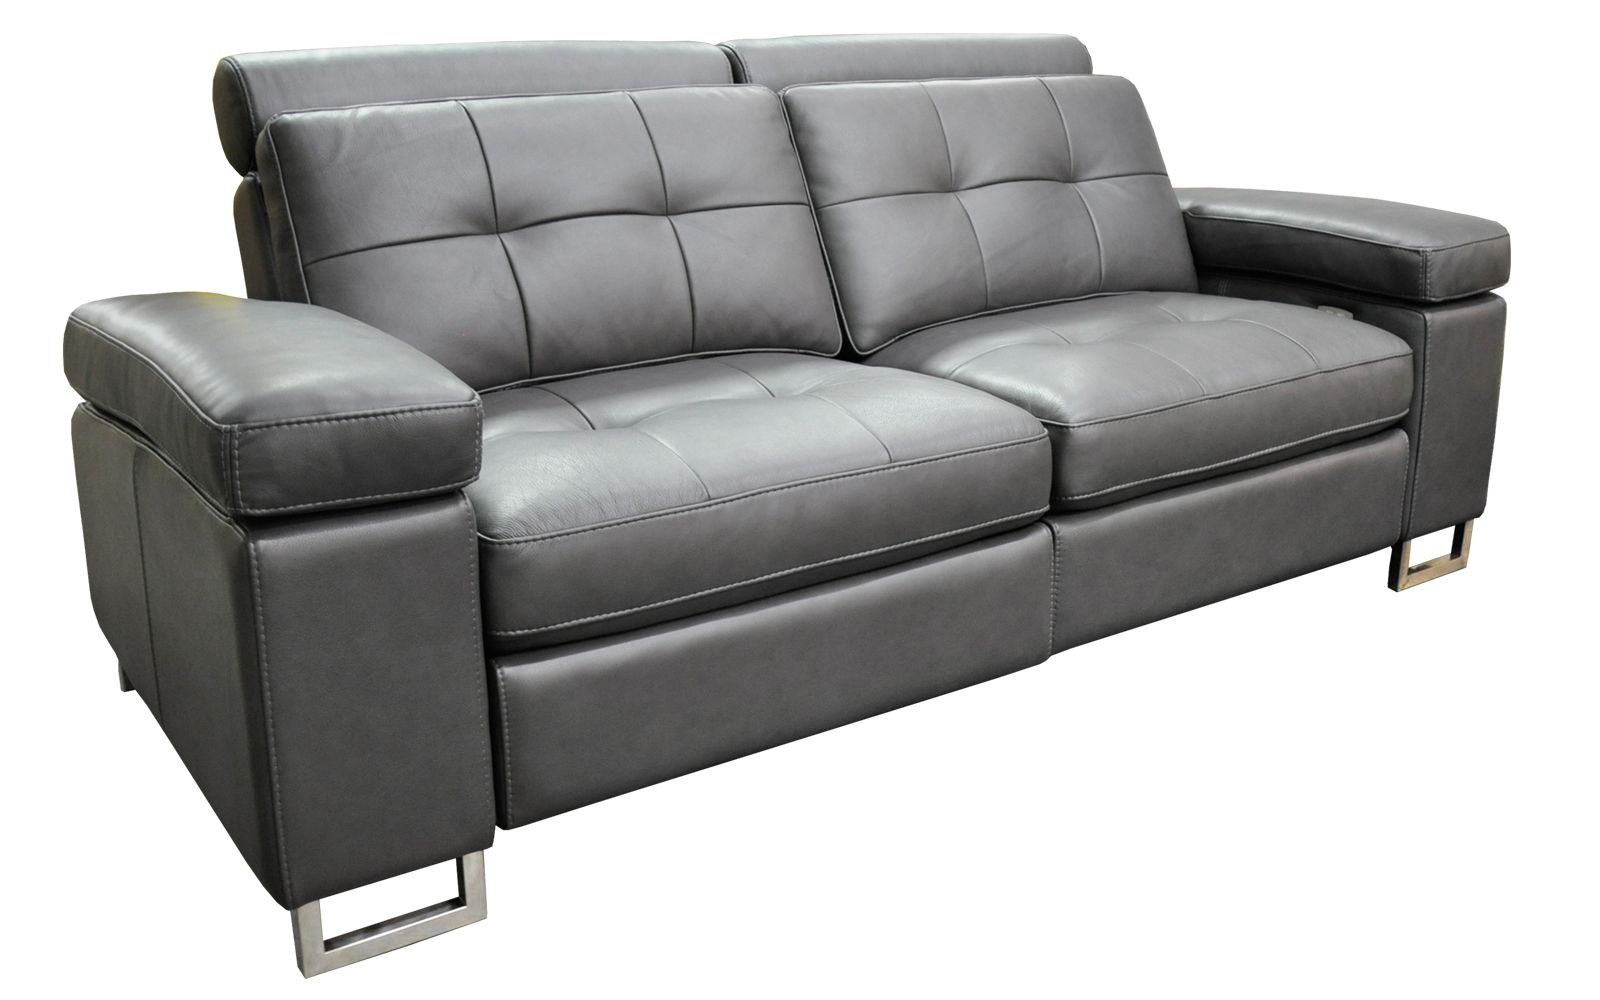 Genial Custom American Made Leather Furniture. Over 100 Styles Of Leather  Sectionals, Leather Sofas,